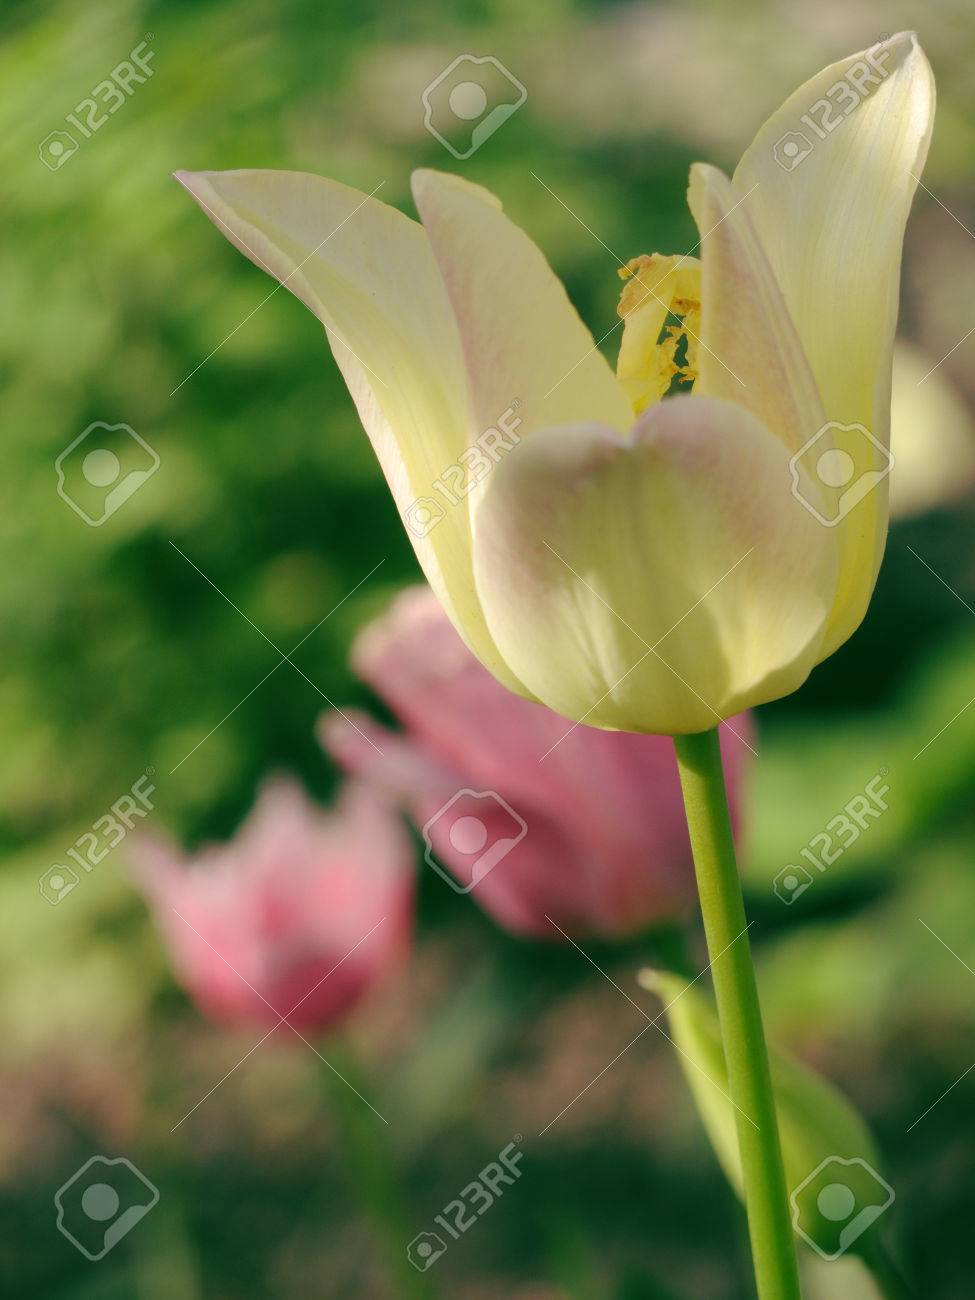 Beautiful spring floral background with tulips on grass background. - 75527845